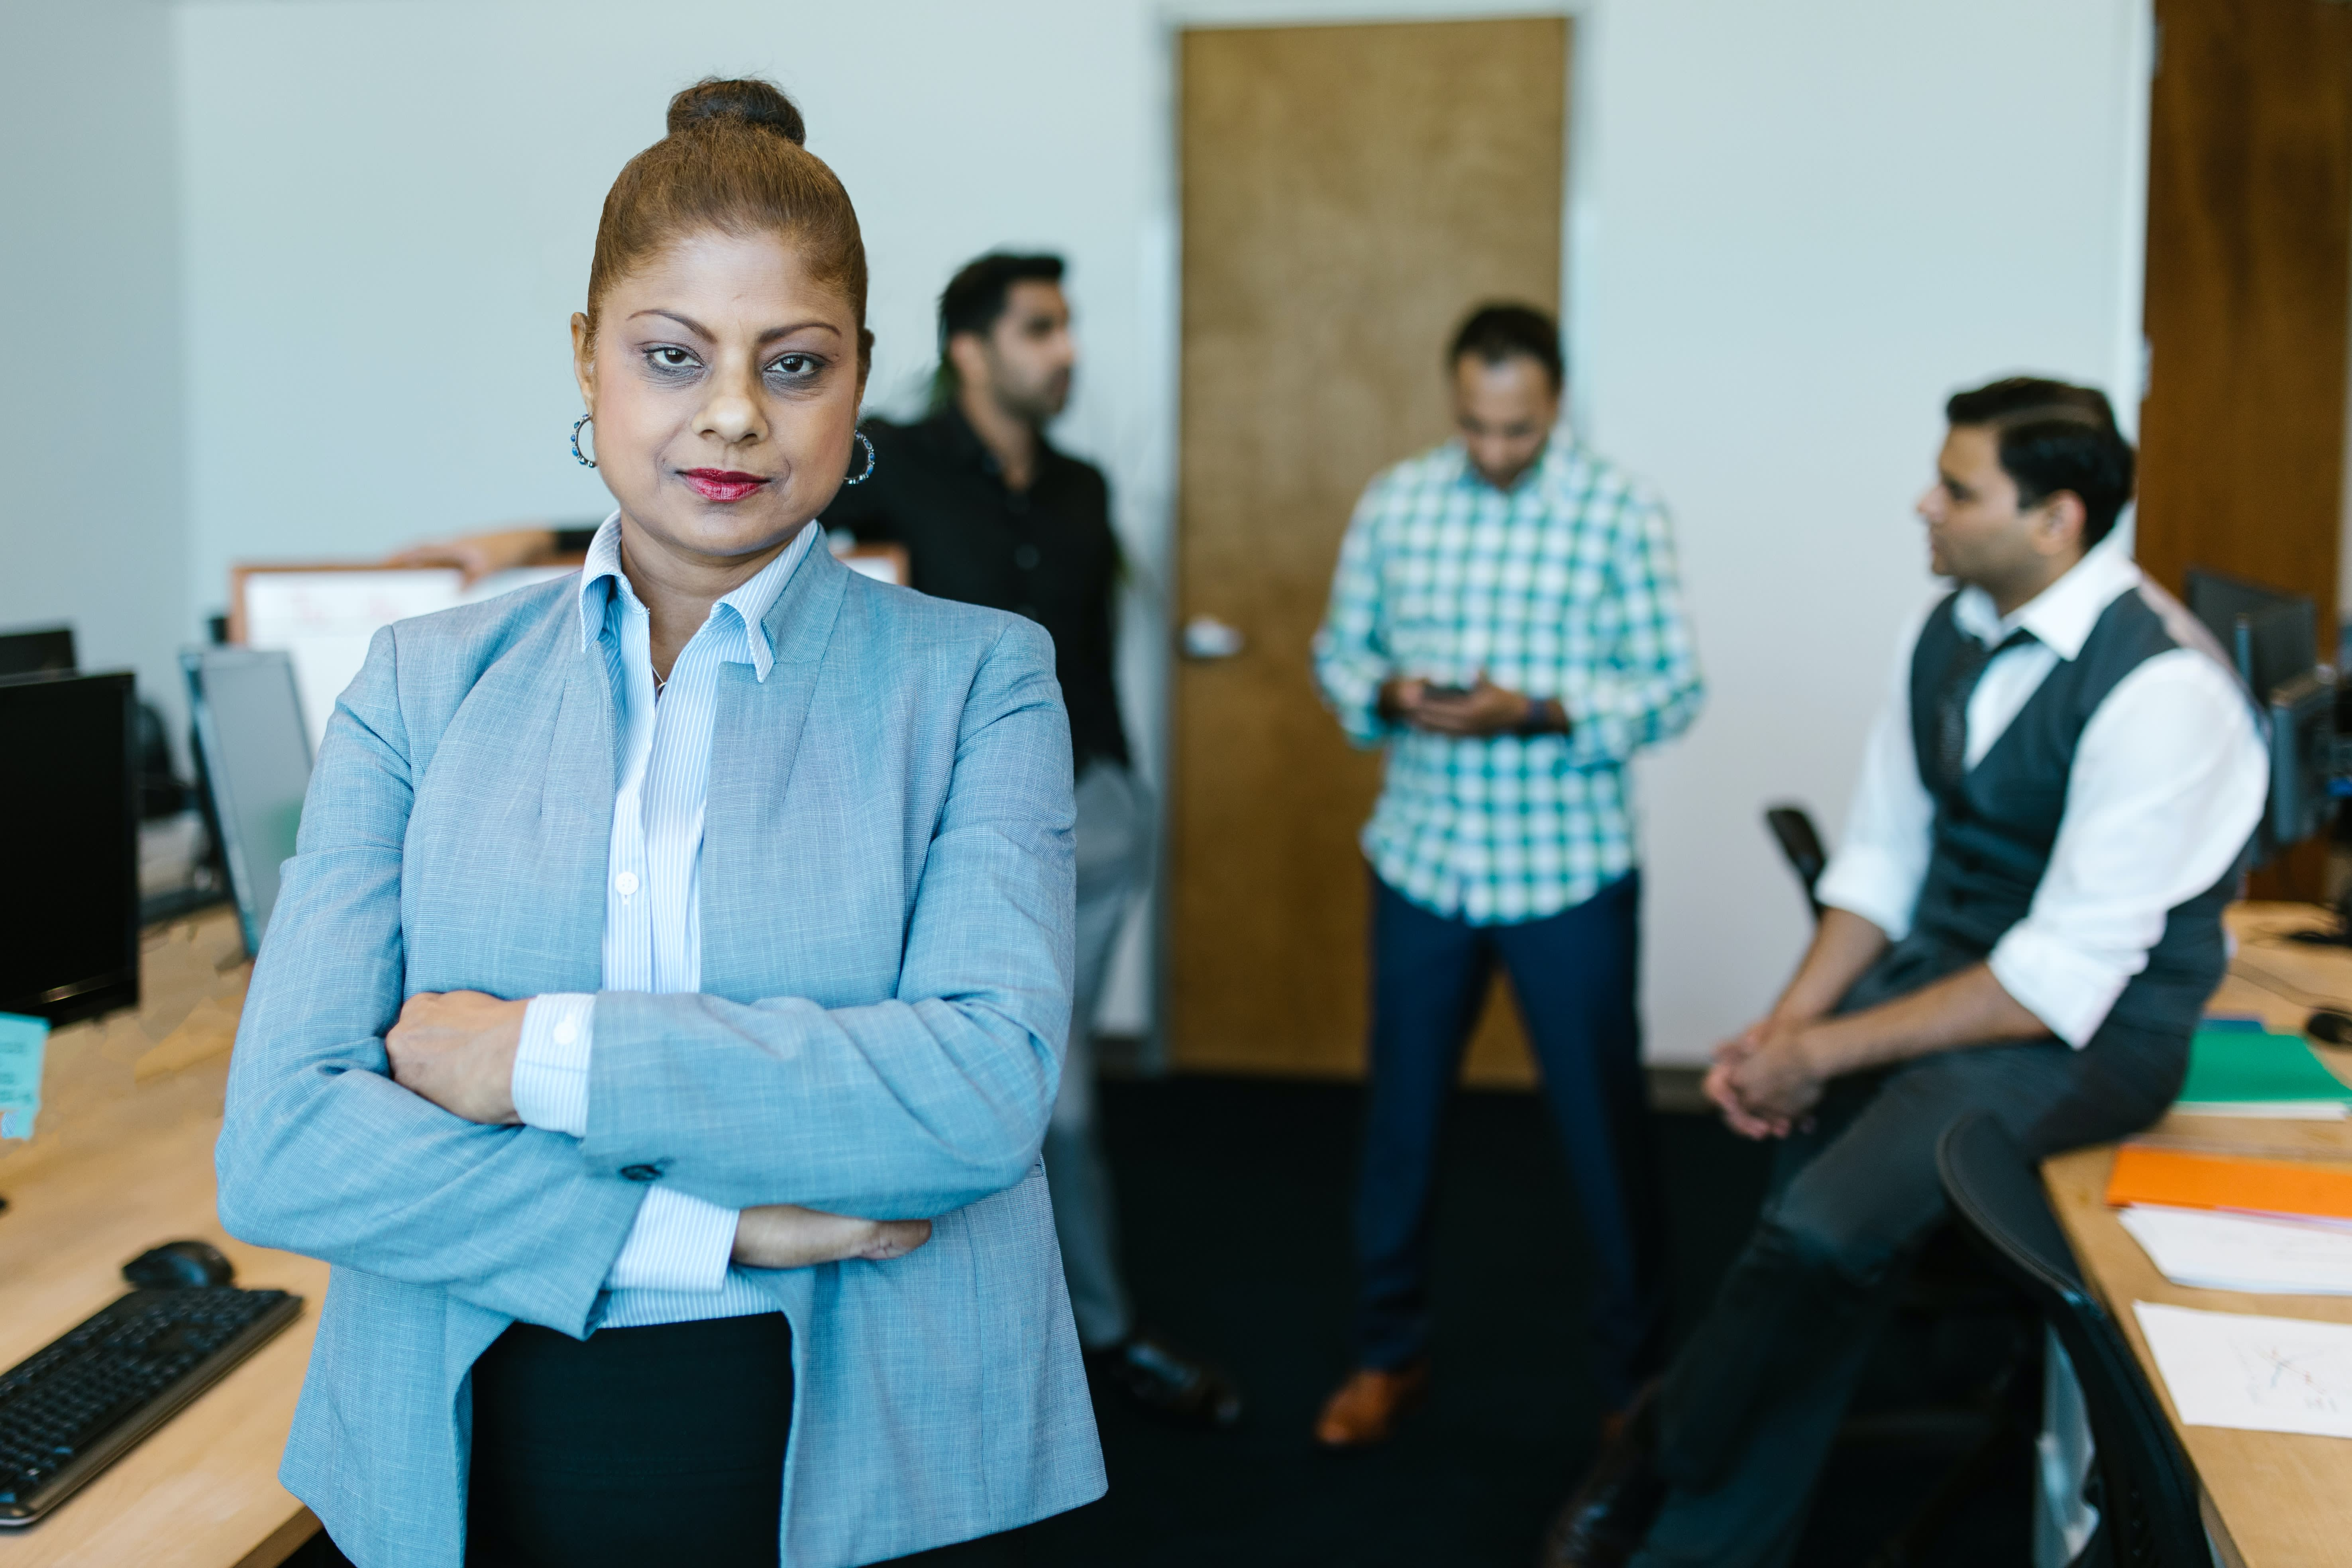 How to manage an effective return to the office